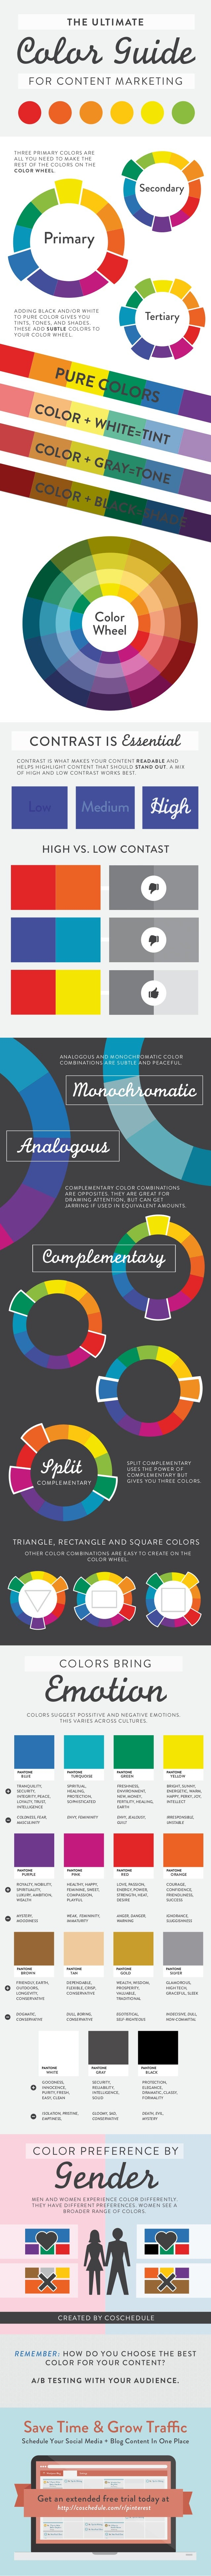 THE ULTIMATE Color Guide FOR CONTENT MARKETING Color Wheel PURE COLORS COLOR + WHITE=TINT COLOR + GRAY=TONE COLOR + BLACK=...